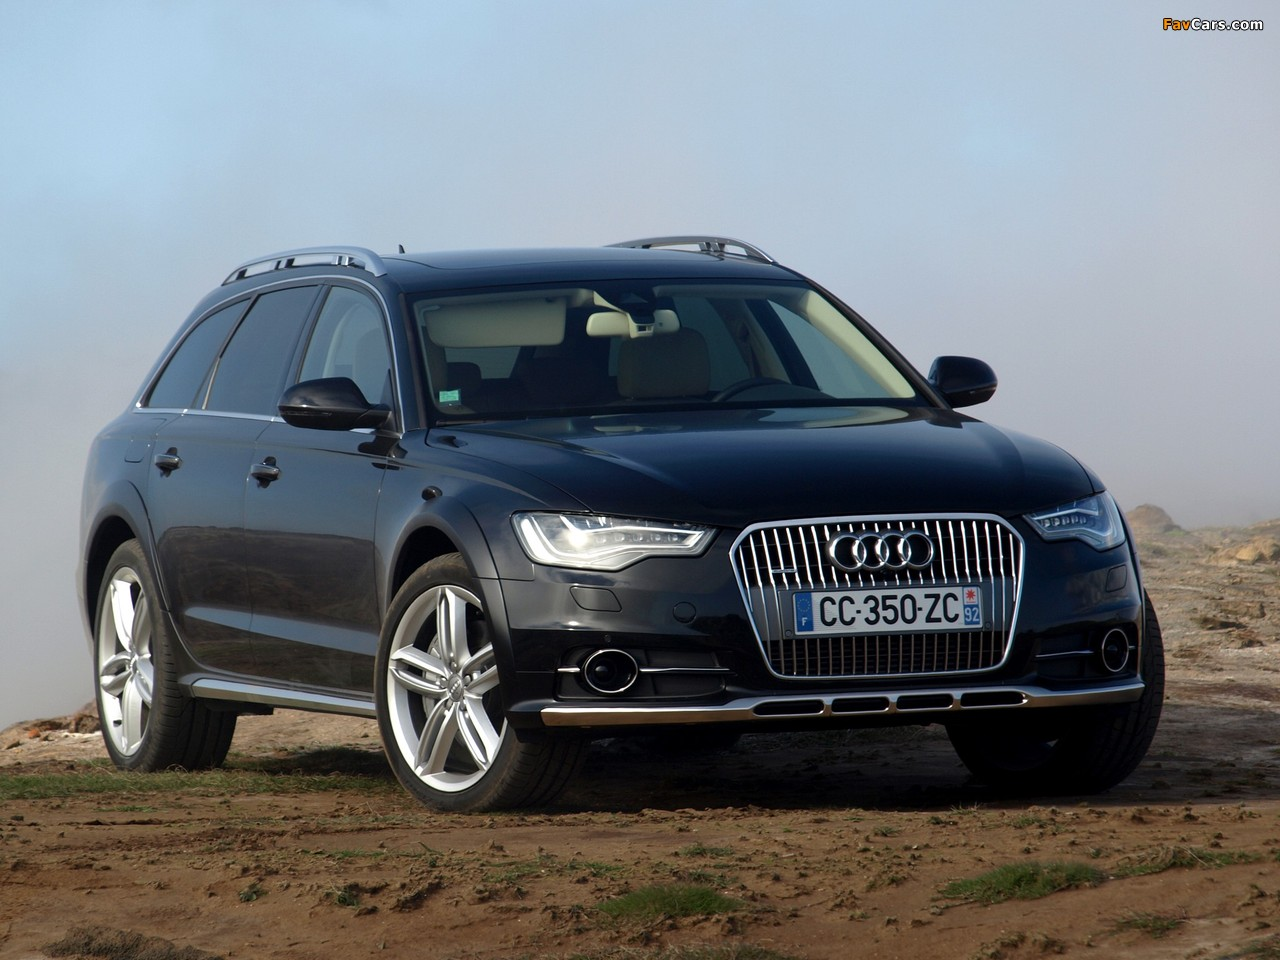 Audi a6 allroad 3 0 tdi quattro 4g c7 2012 wallpapers 1280x960